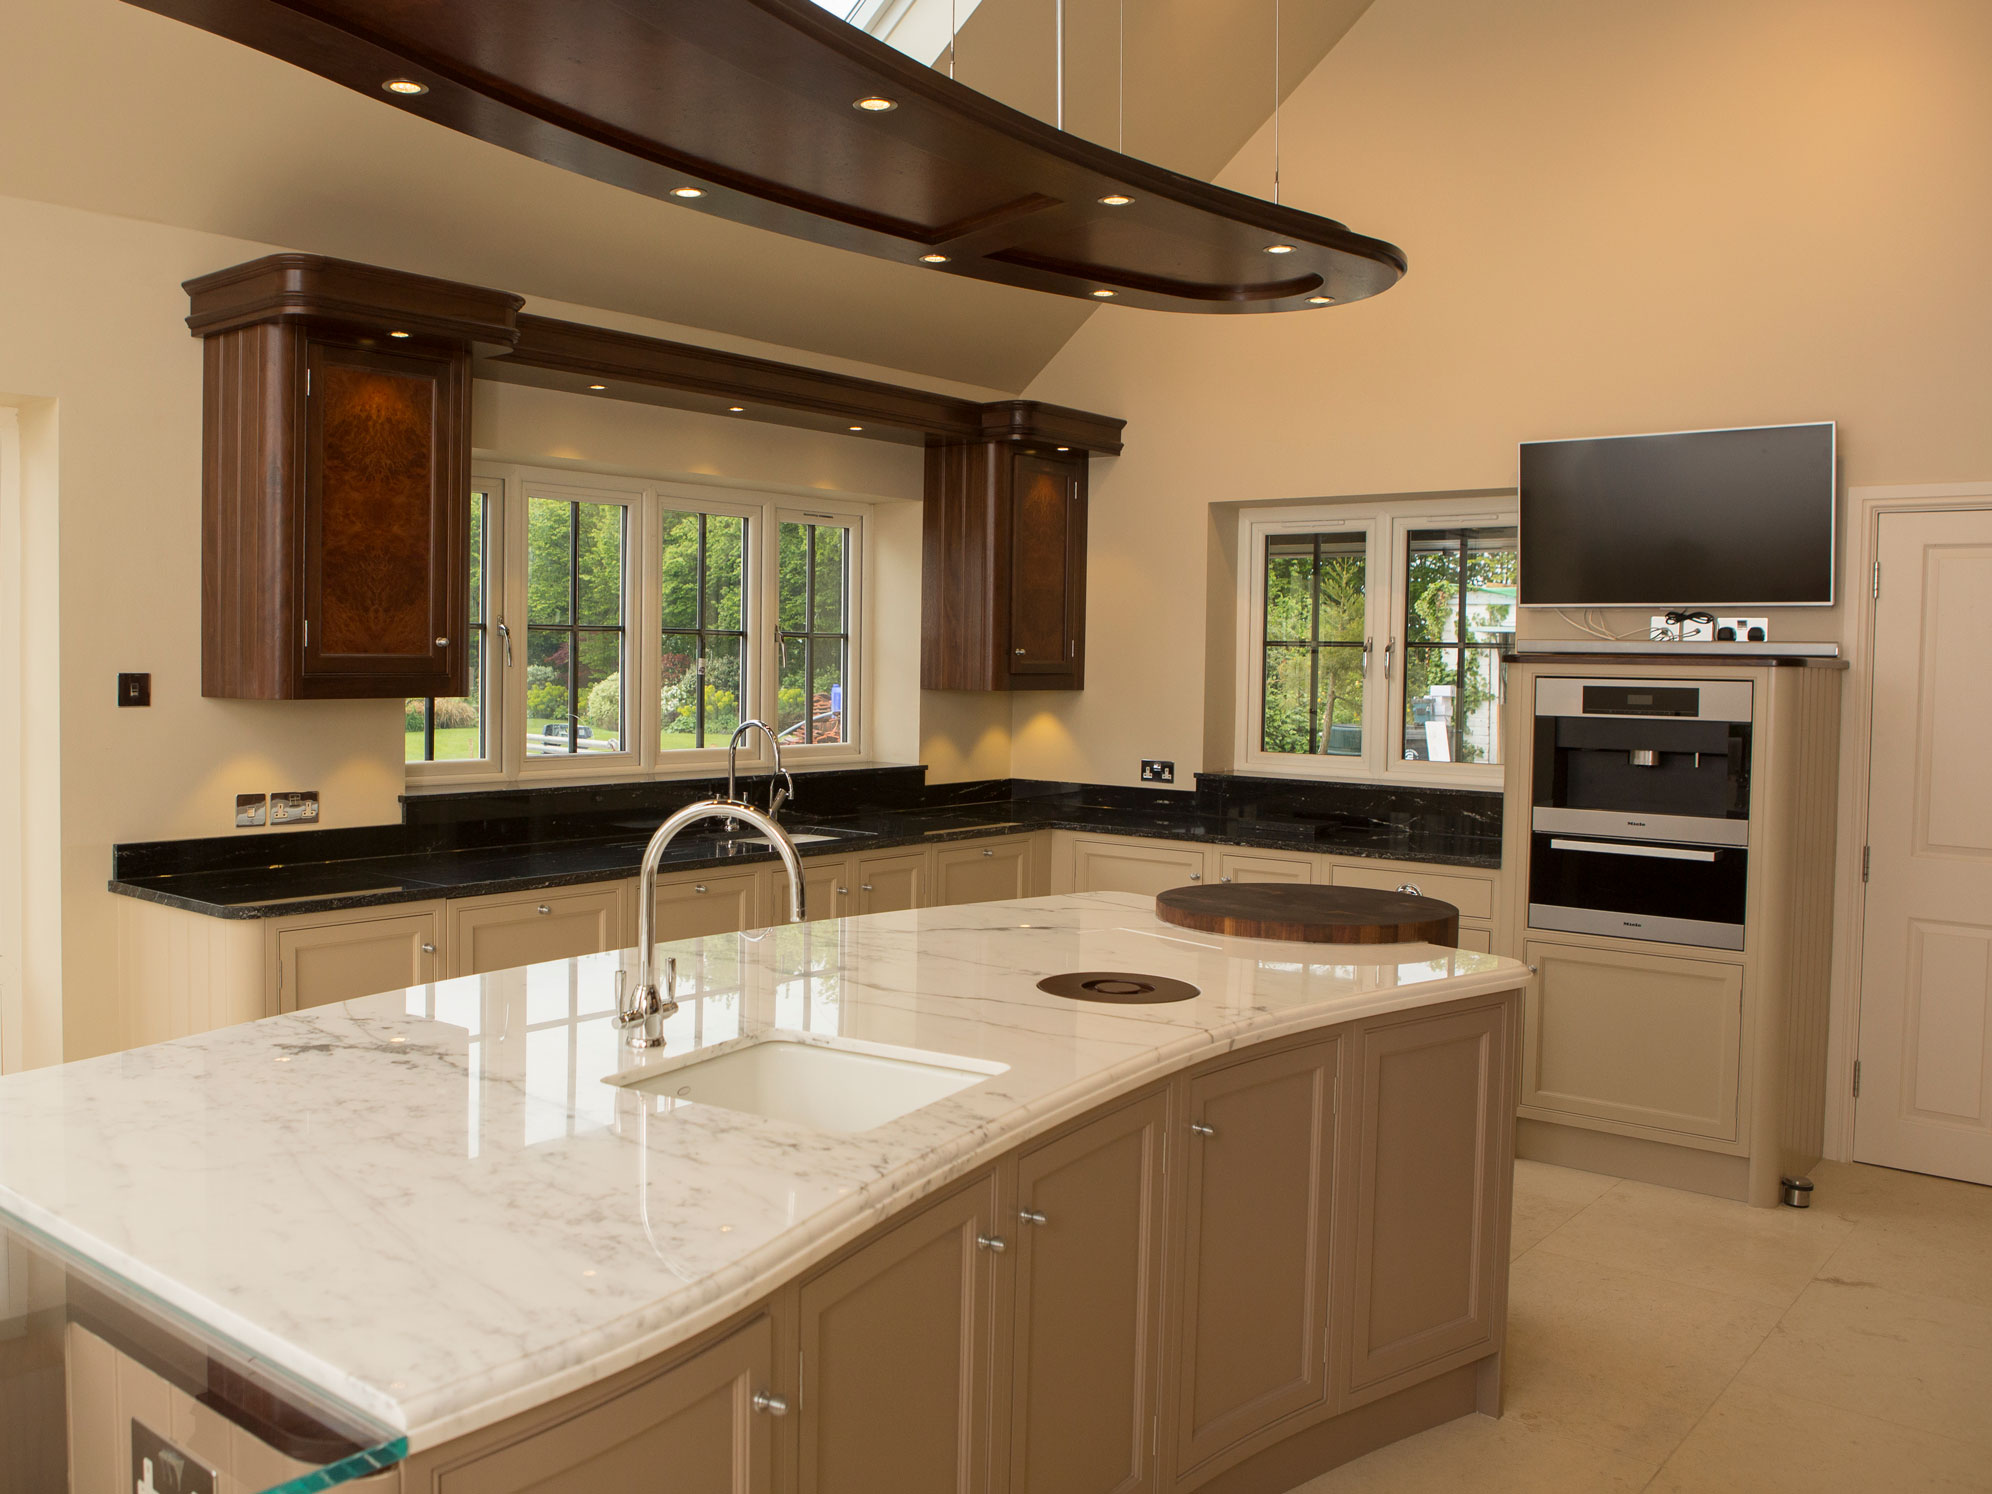 Marbonyx Ongar Kitchen Project Different Countertops-1